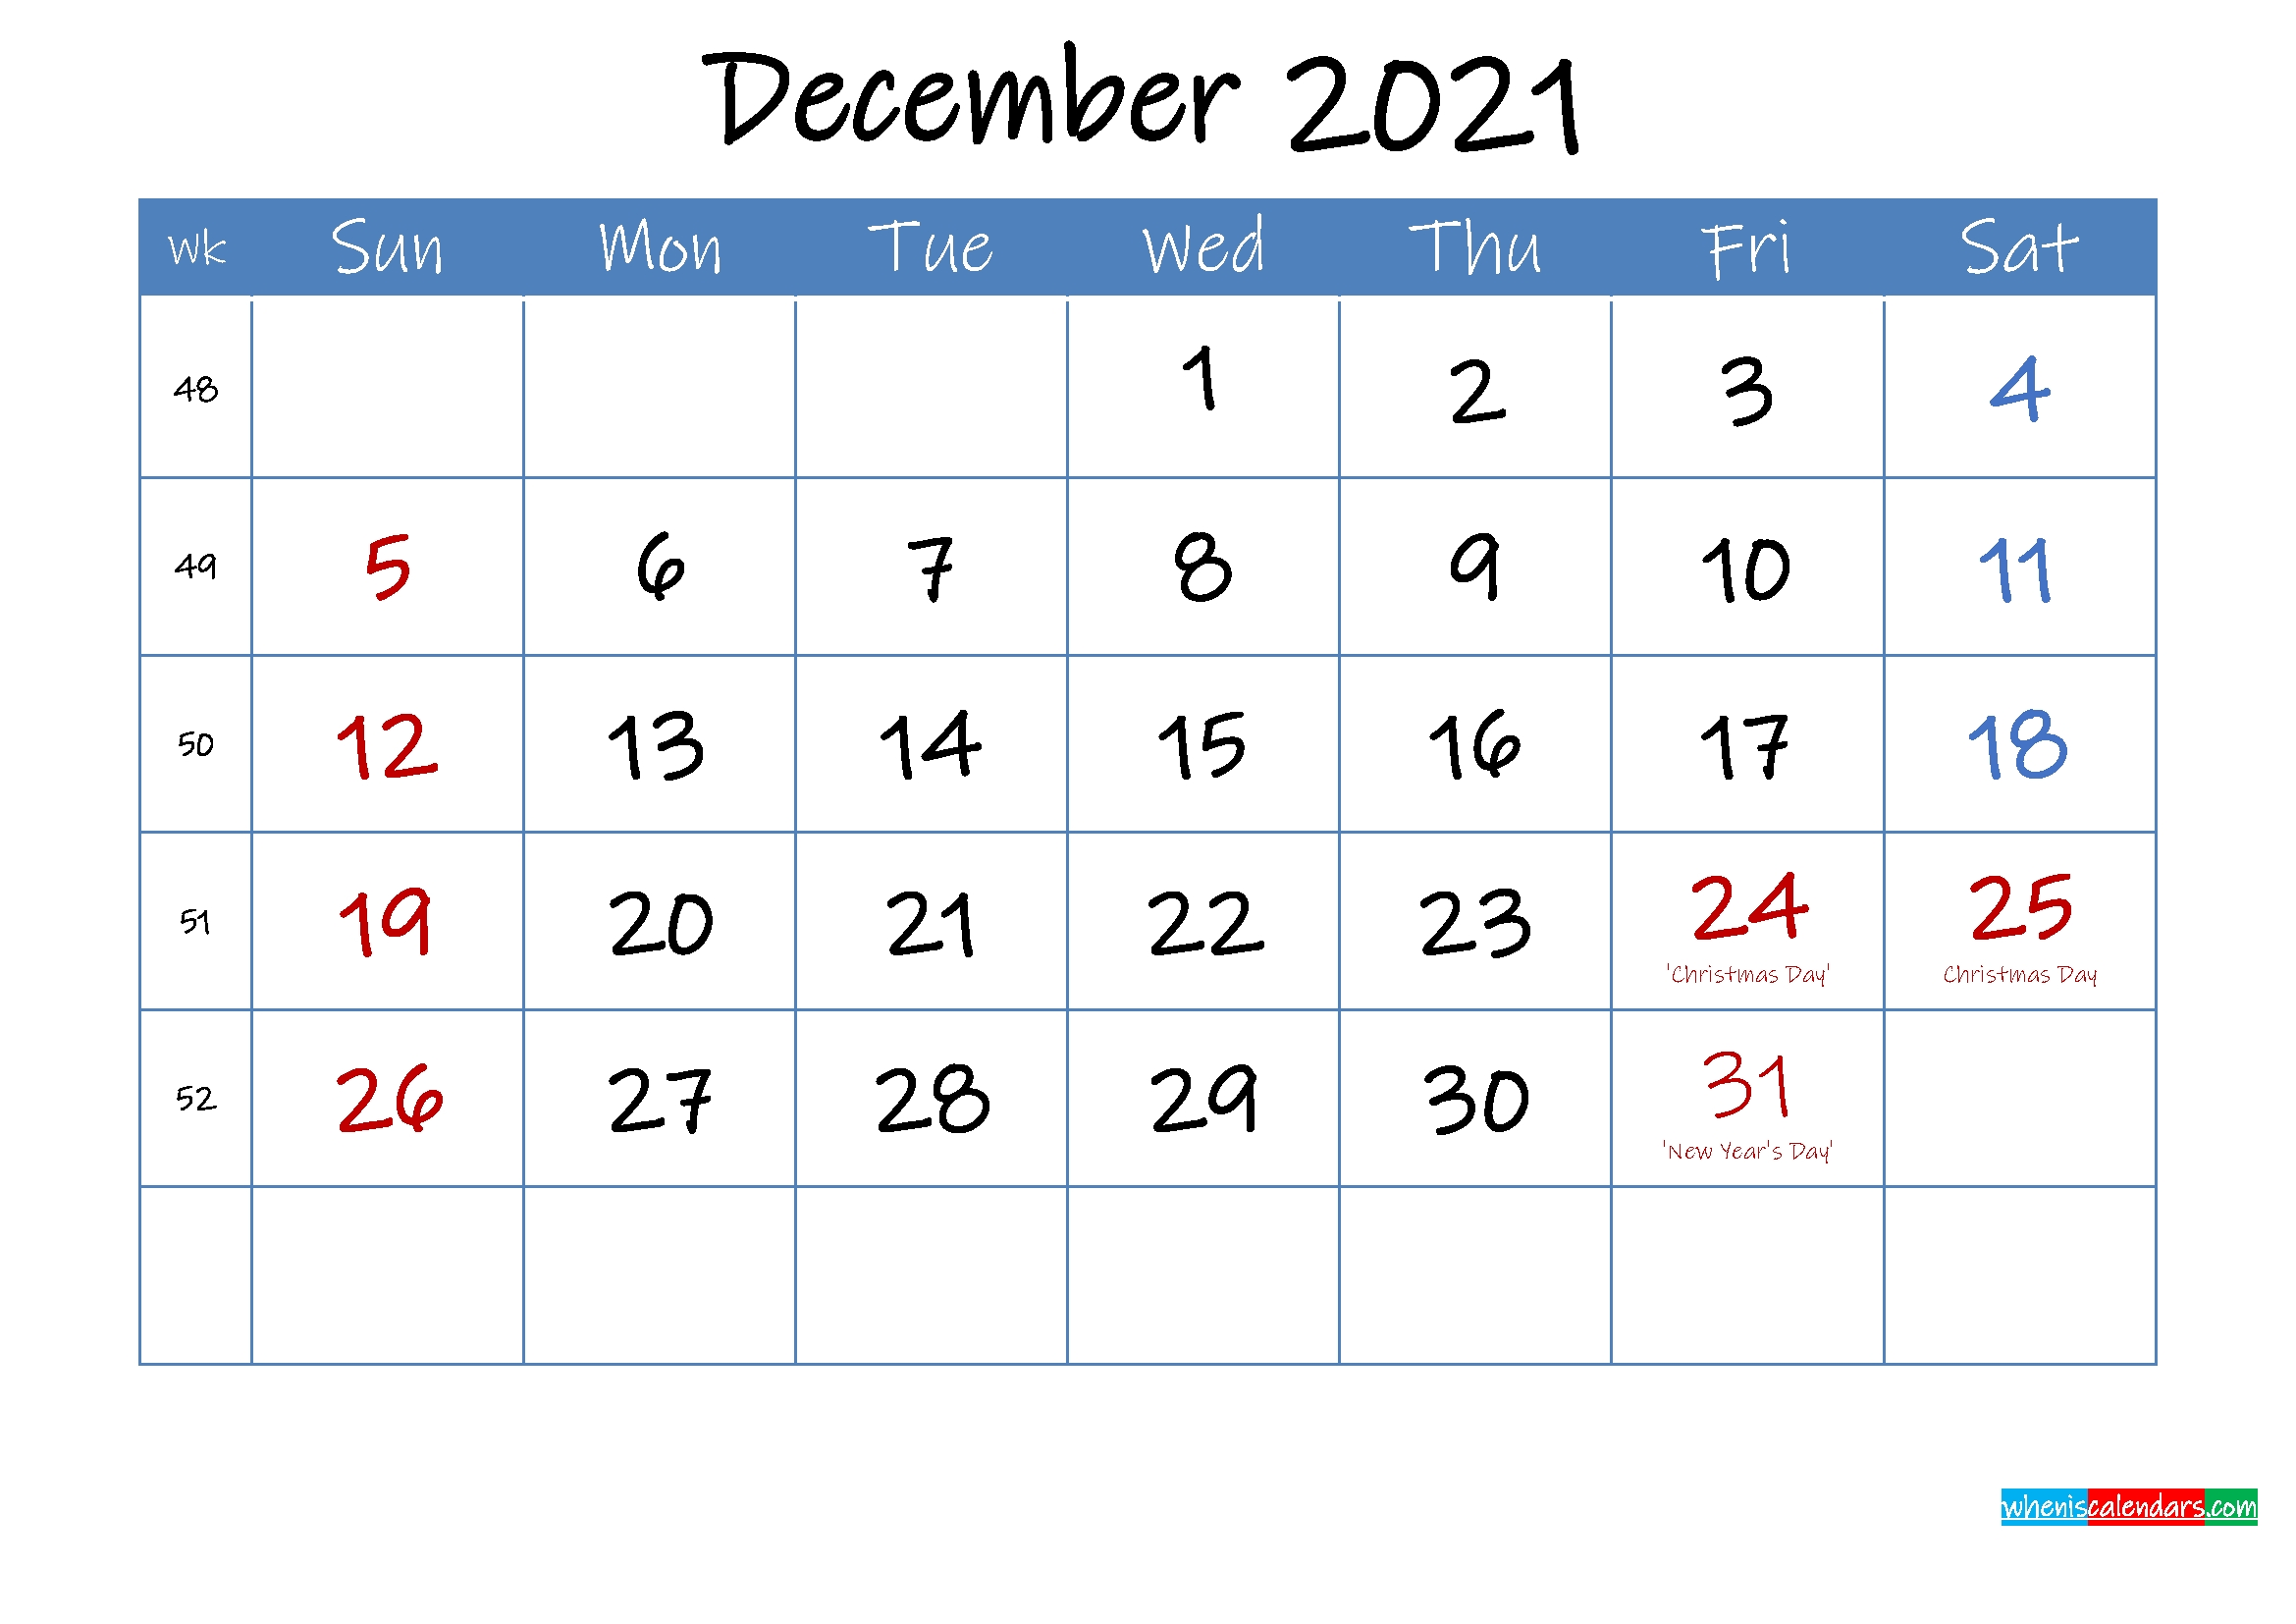 Printable December 2021 Calendar Word - Template Ink21M24